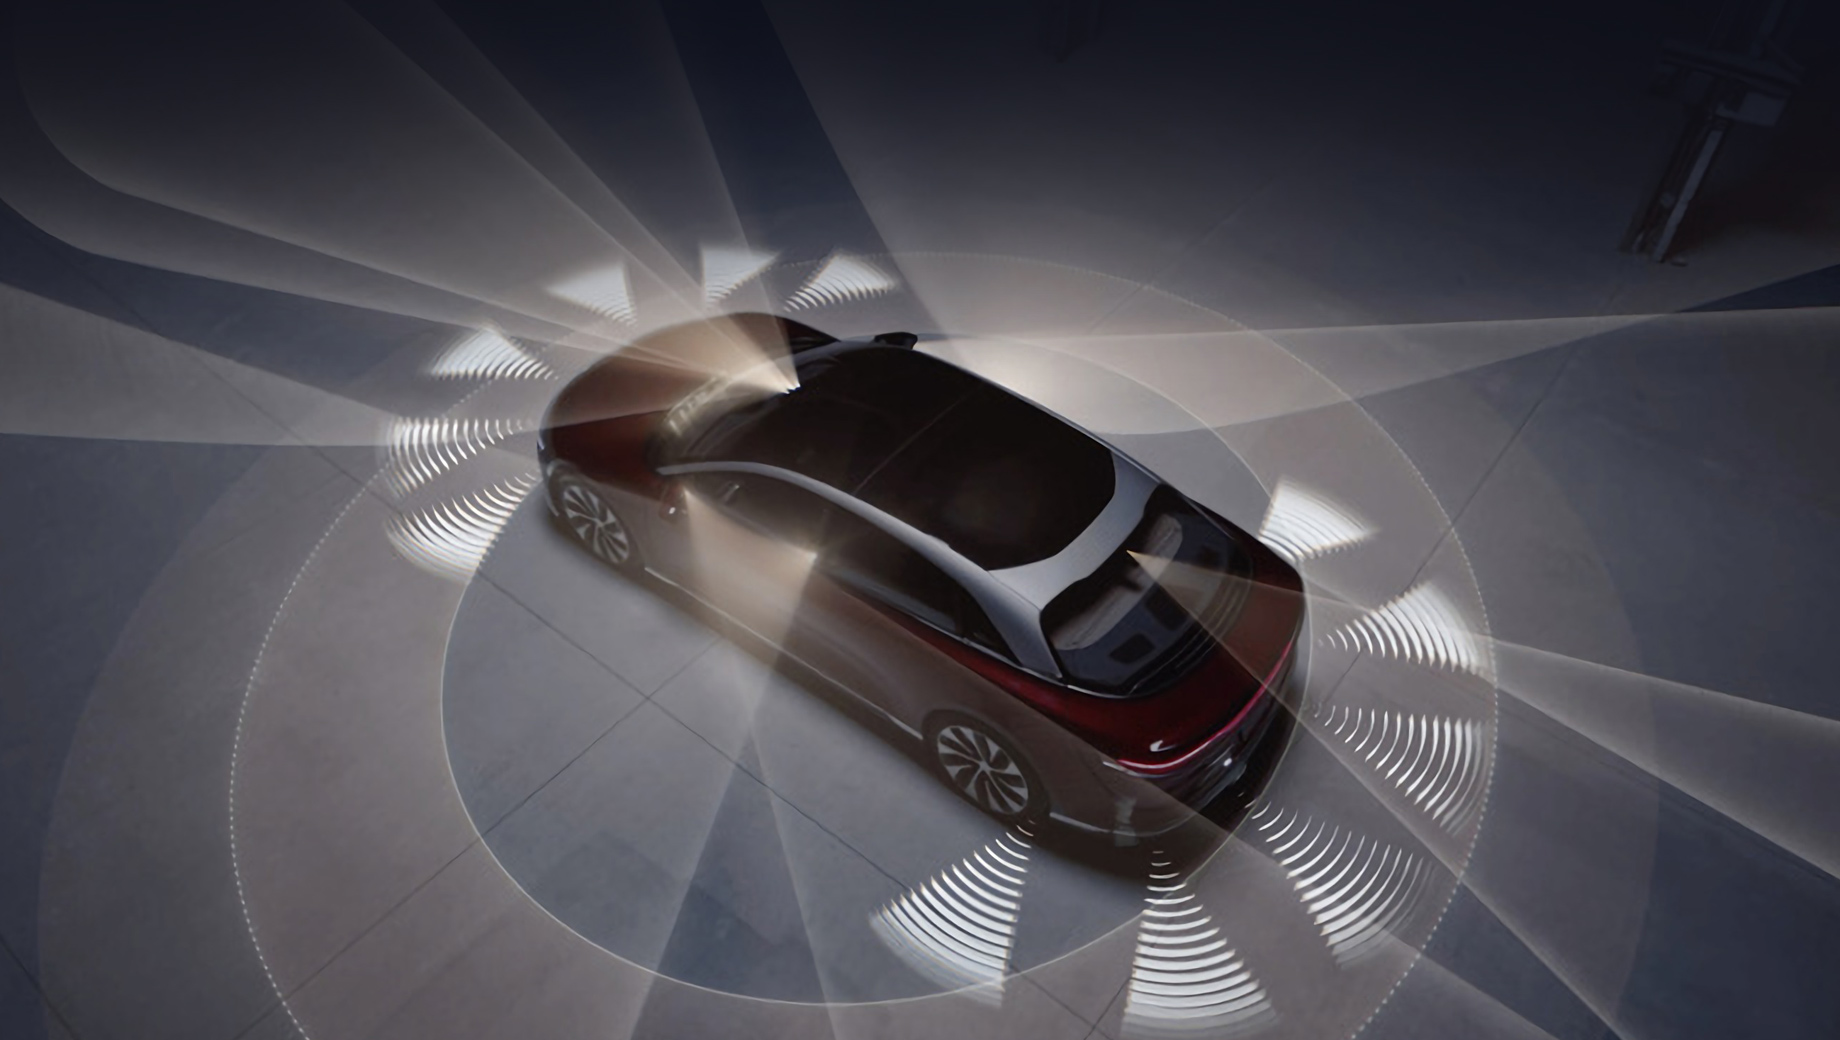 Getting ready to launch its Air battery sedan, Lucid has filmed a video about the car's self-driving system called DreamDrive. The feature promises to compete strongly against Tesla's FSD and be available from day 1.